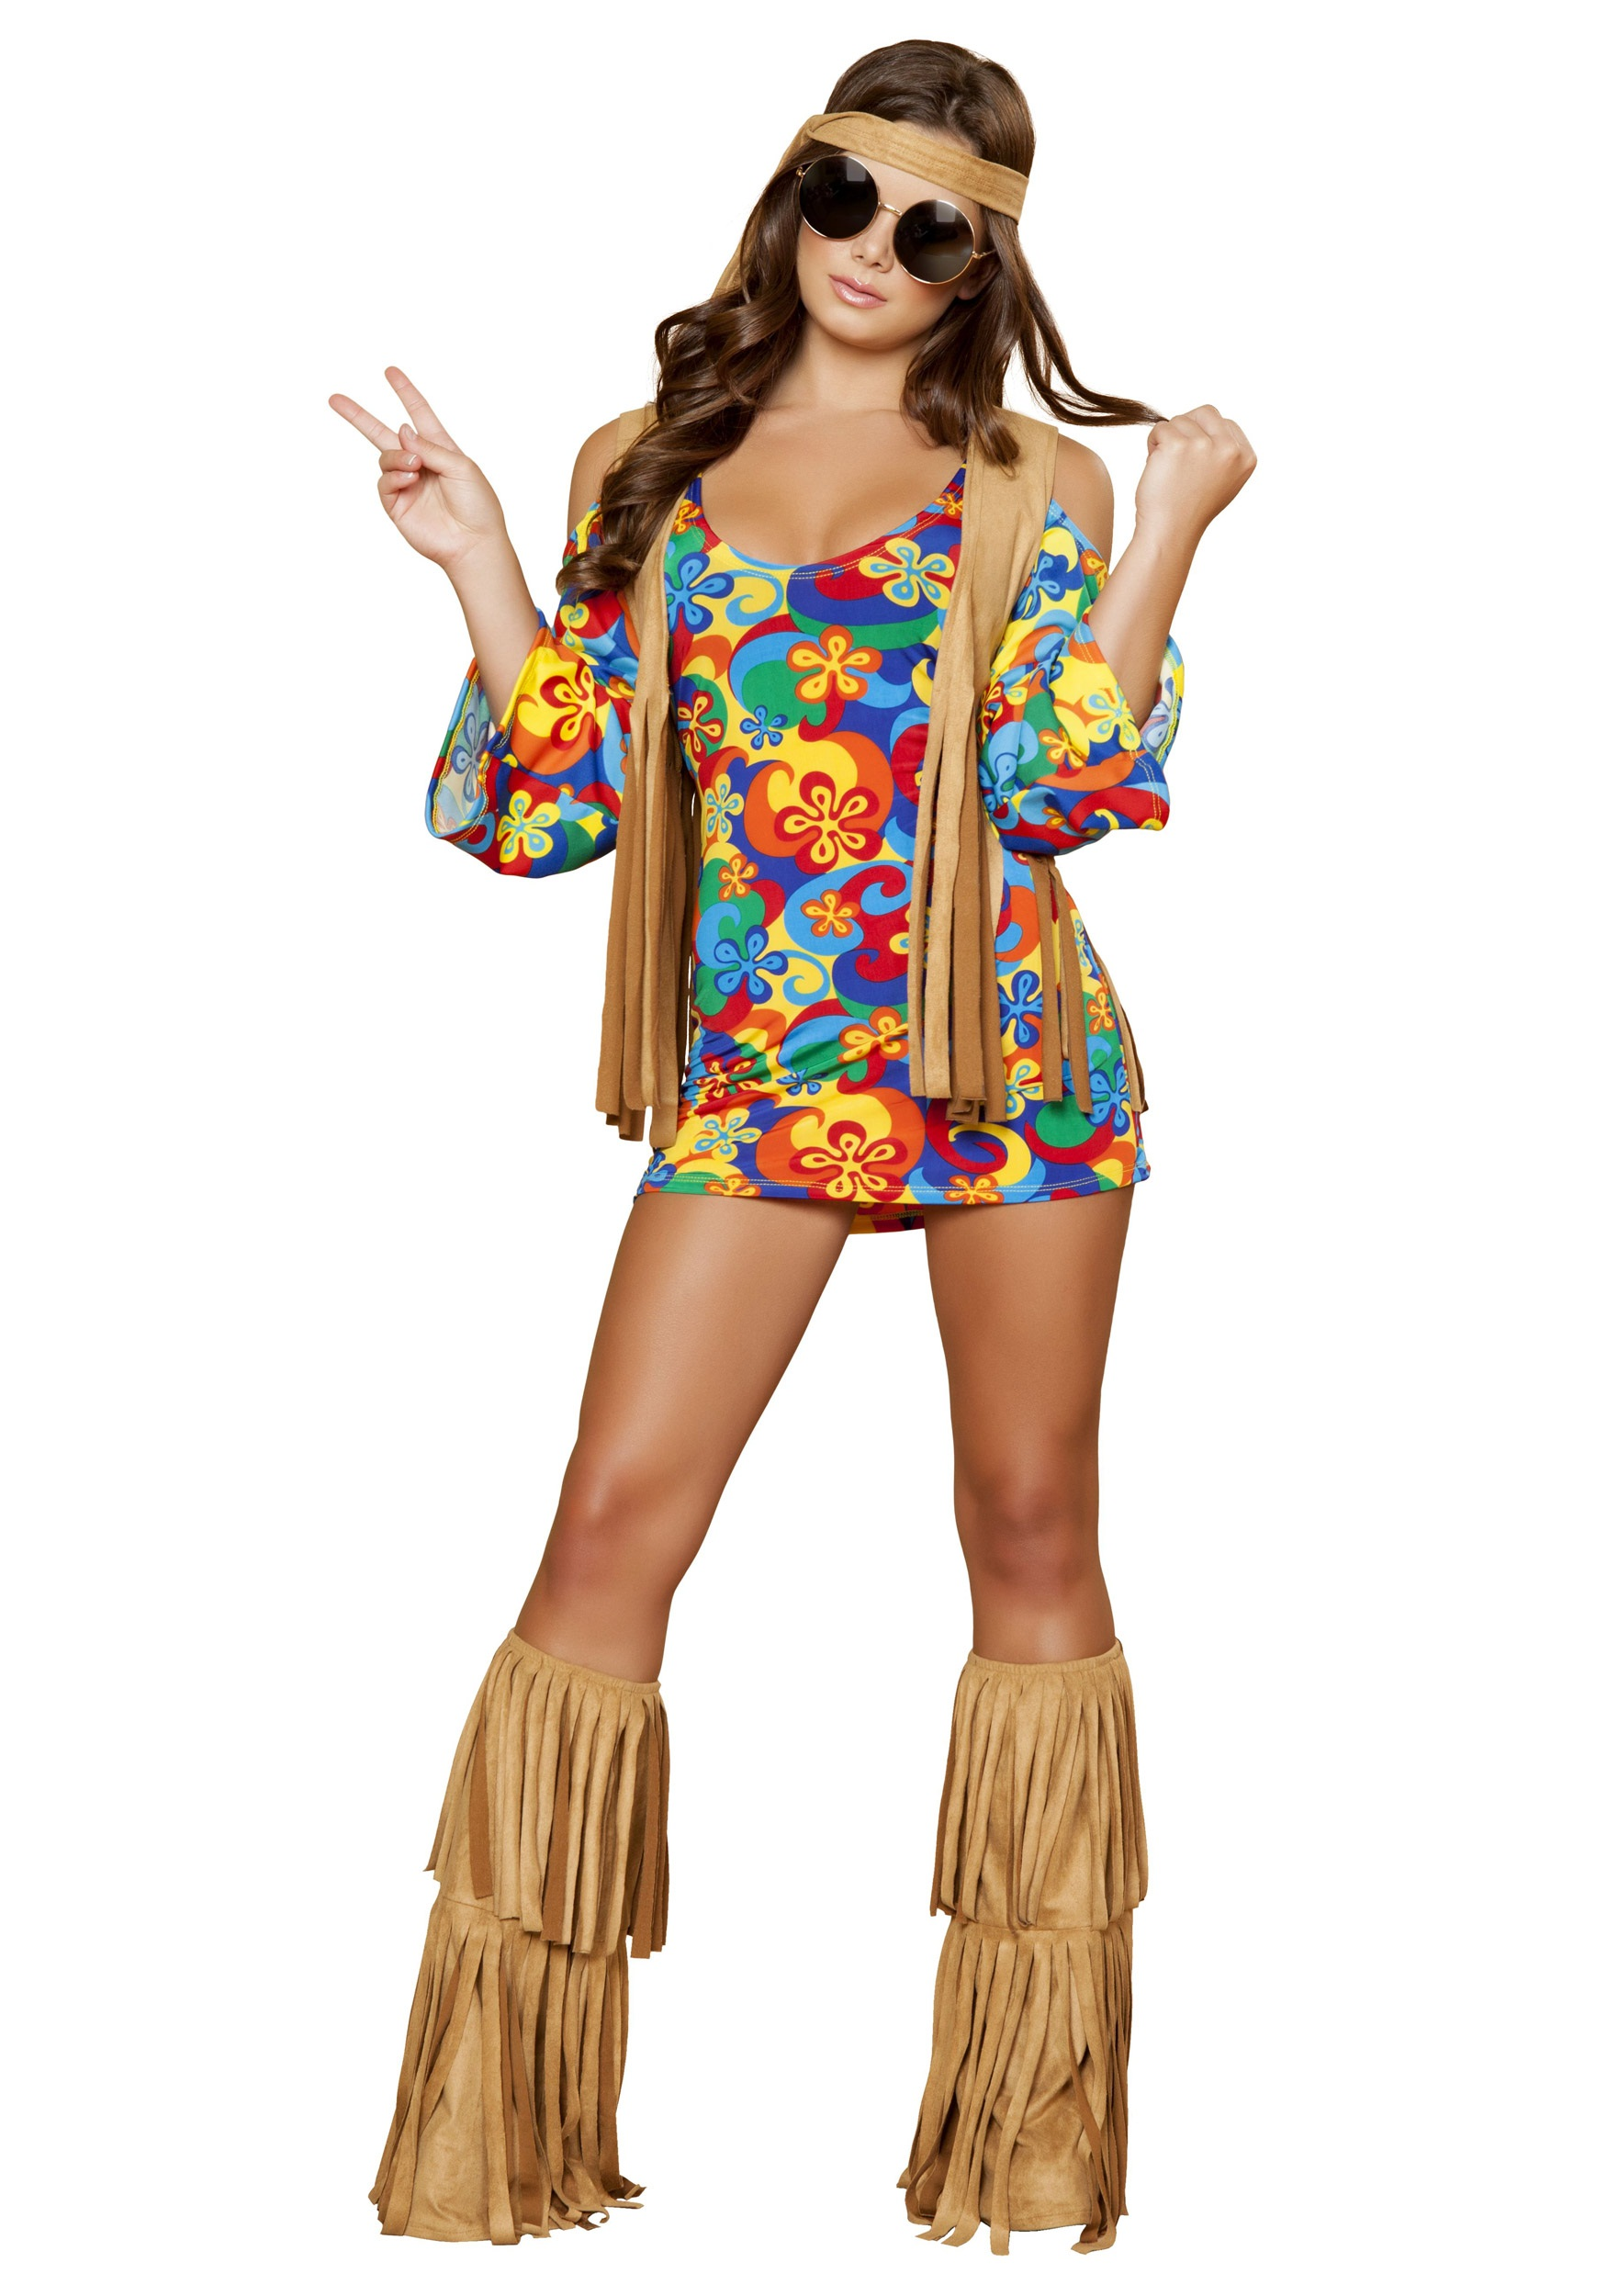 Women's Hippie Hottie Costume